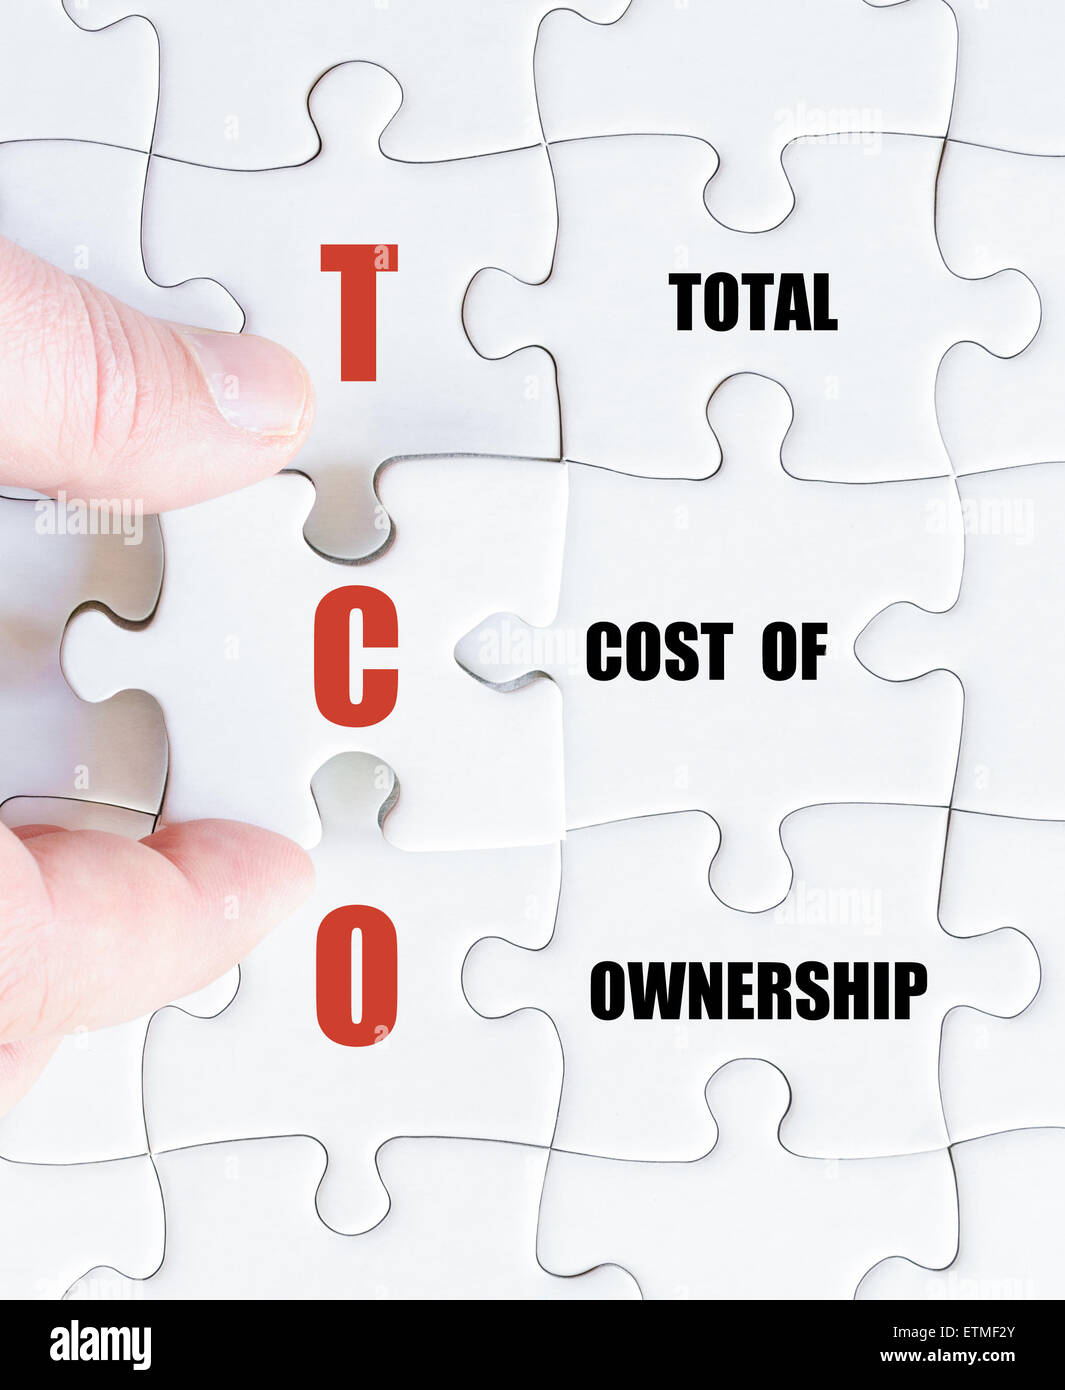 Hand of a business man completing the puzzle with the last missing piece.Concept image of Business Acronym TCO as Stock Photo